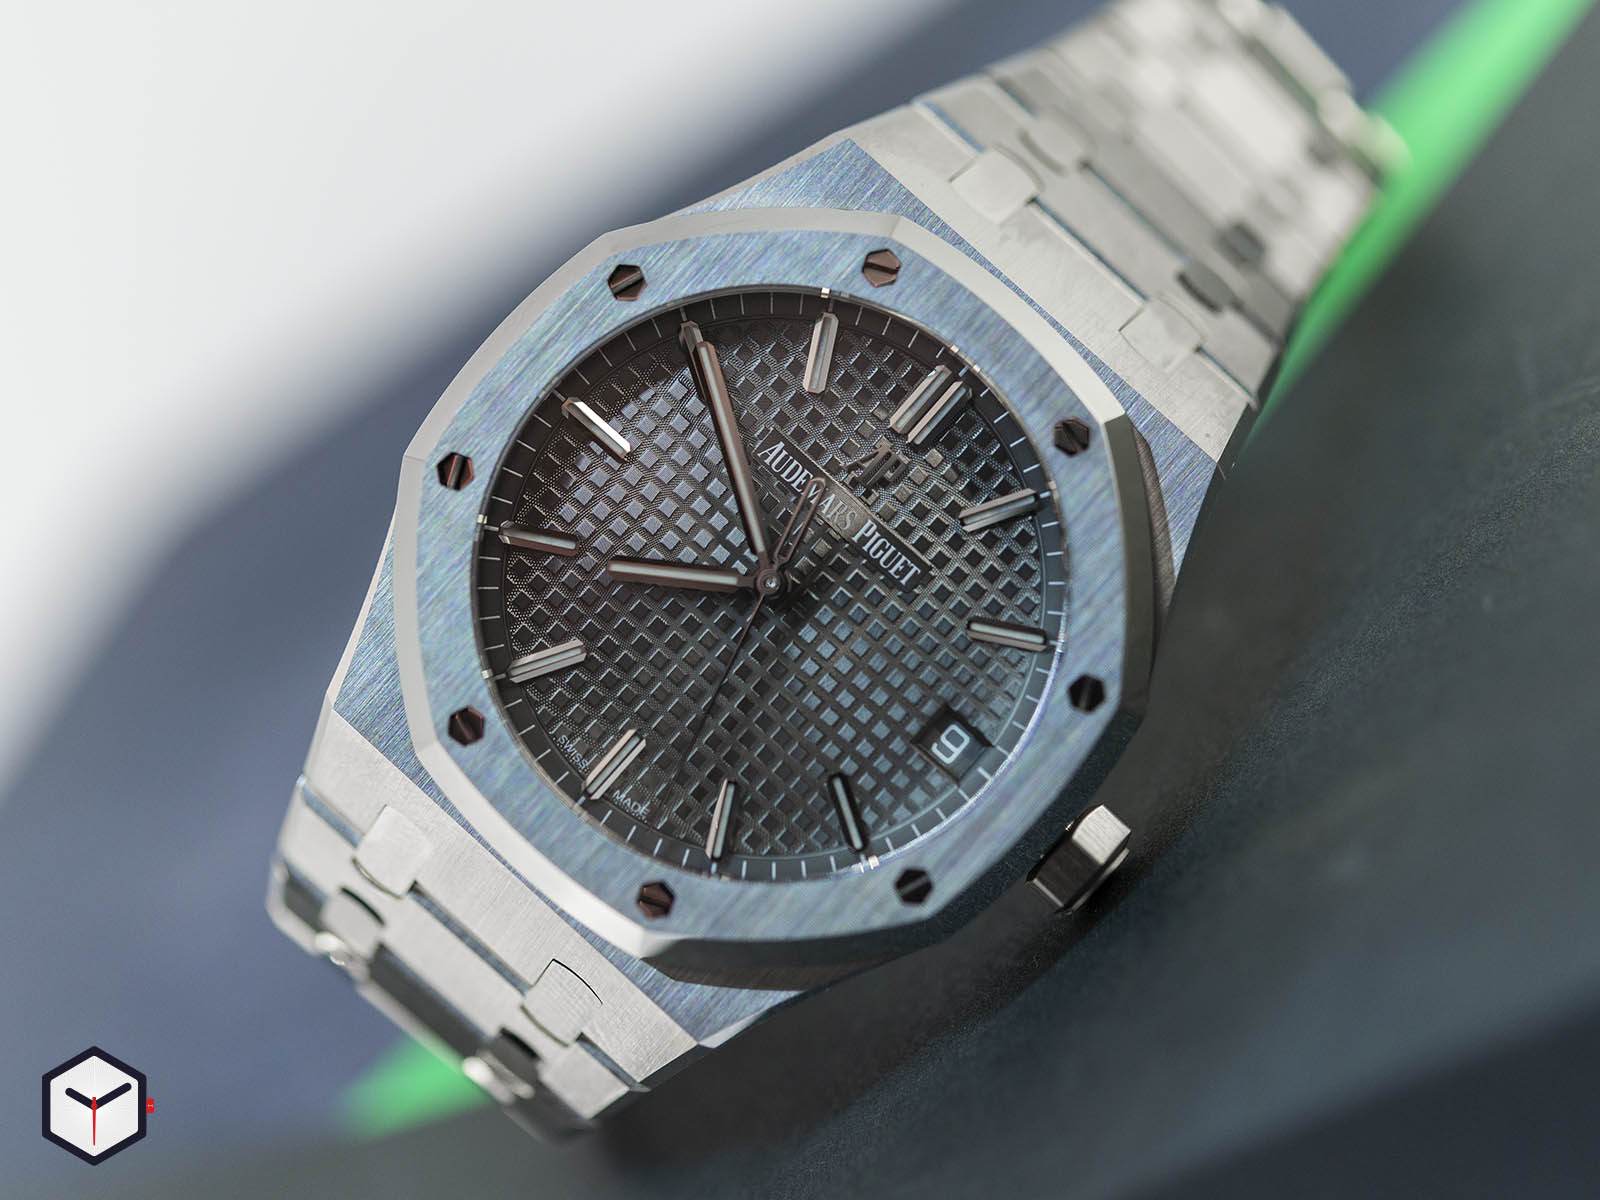 15500-audemars-piguet-royal-oak-sihh-2019-2.jpg